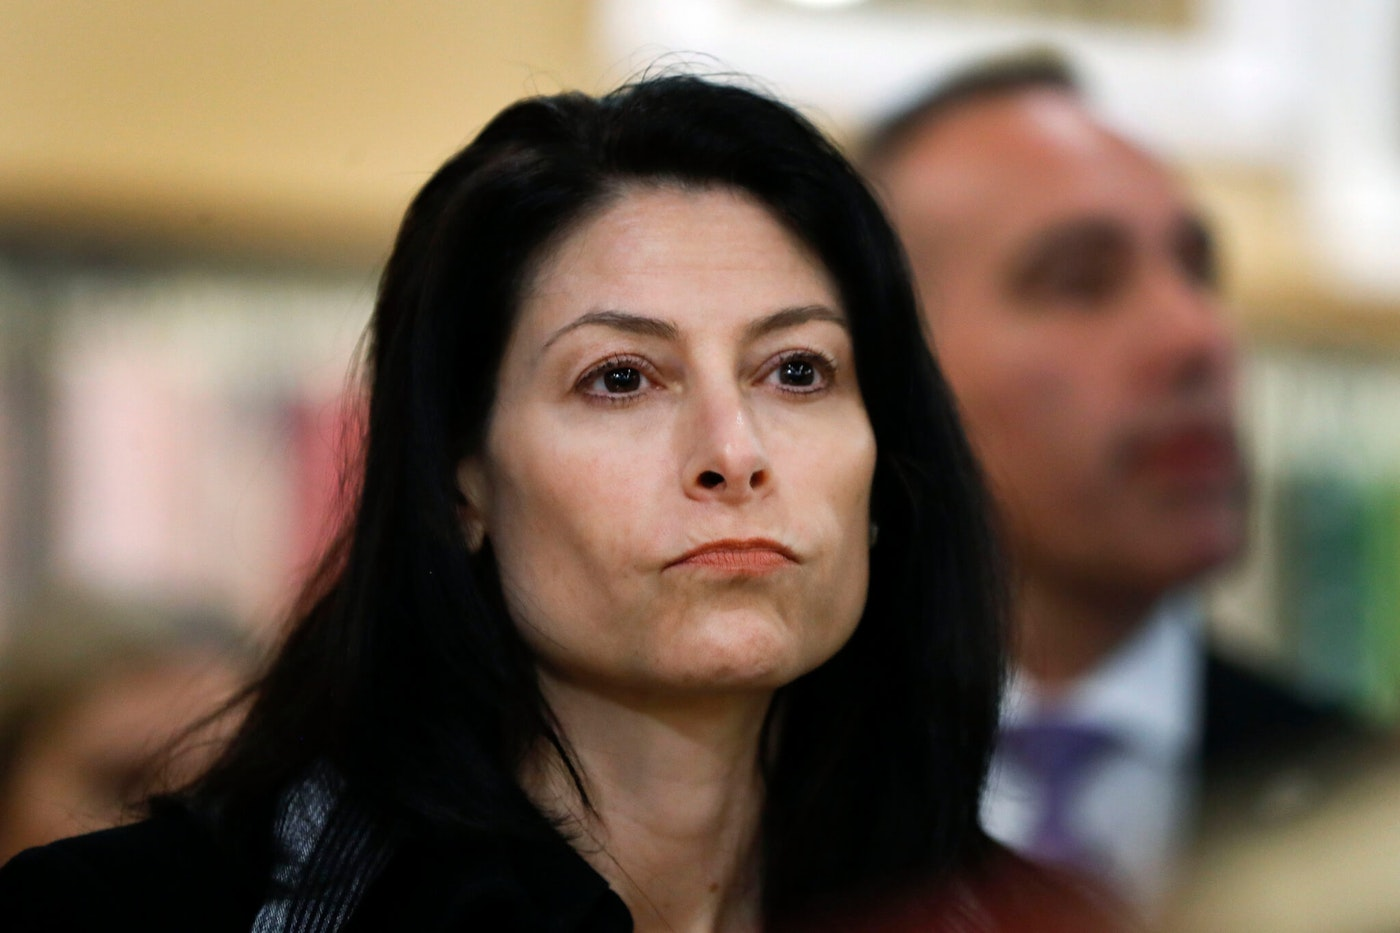 In this March 18, 2019, file photo, Michigan Attorney General Dana Nessel attends an event in Clawson, Mich. A Michigan judge has struck down a new requirement that makes it harder to initiate ballot drives by limiting the number of signatures that can be counted from a single congressional district. Nessel previously said the 15% limit and other portions of the law are unconstitutional. State election officials are complying with her opinion, but appellate courts will have the final say. (AP Photo/Paul Sancya File)